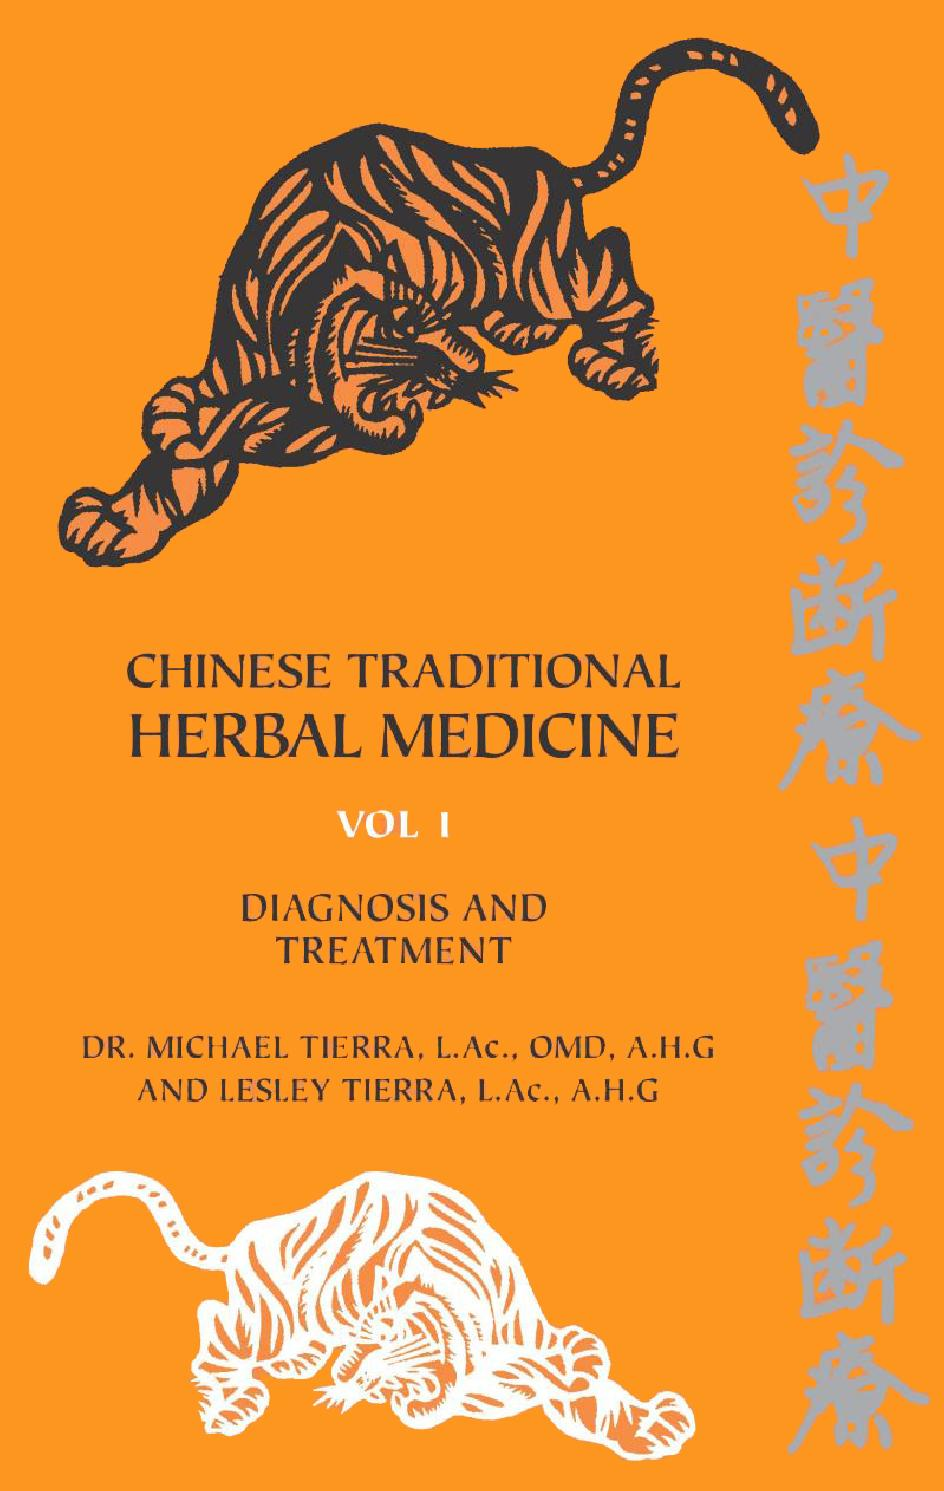 Chinese cancer cure herbs bibliography - Chinese Cancer Cure Herbs Bibliography 32